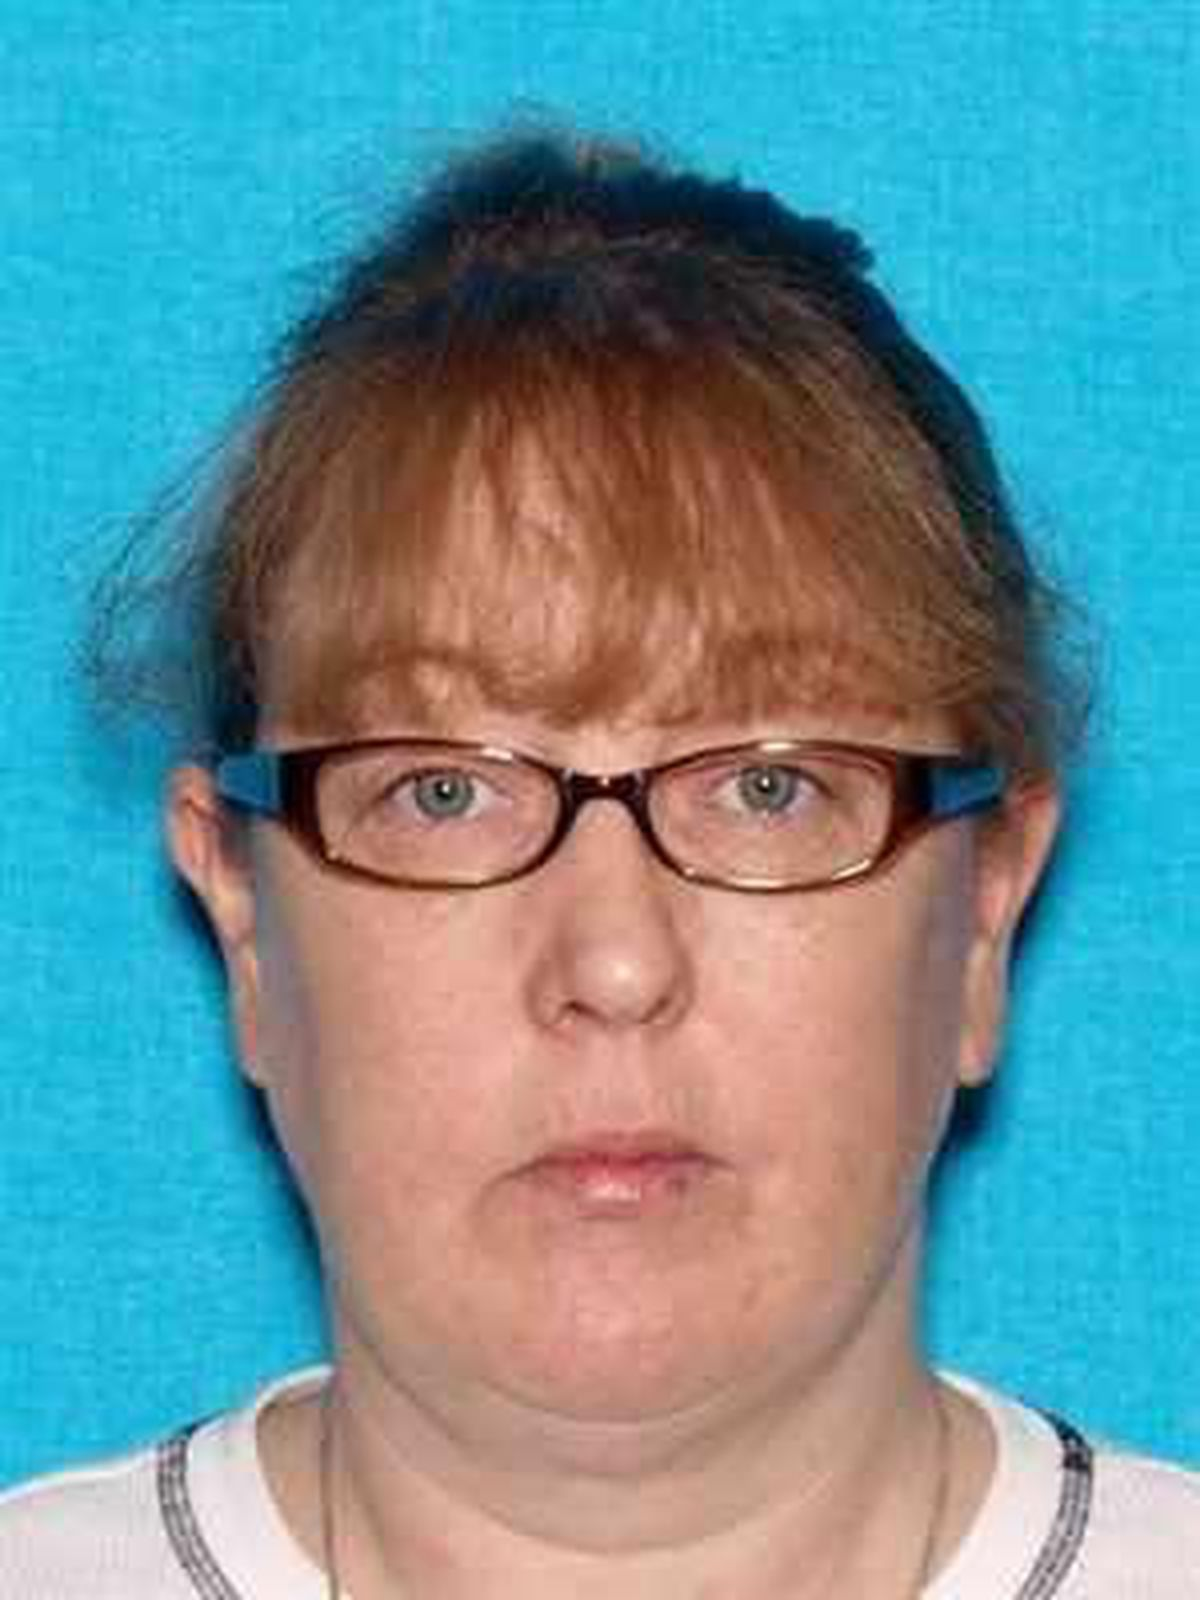 Body Of Missing Woman Found In Weakley County, TN